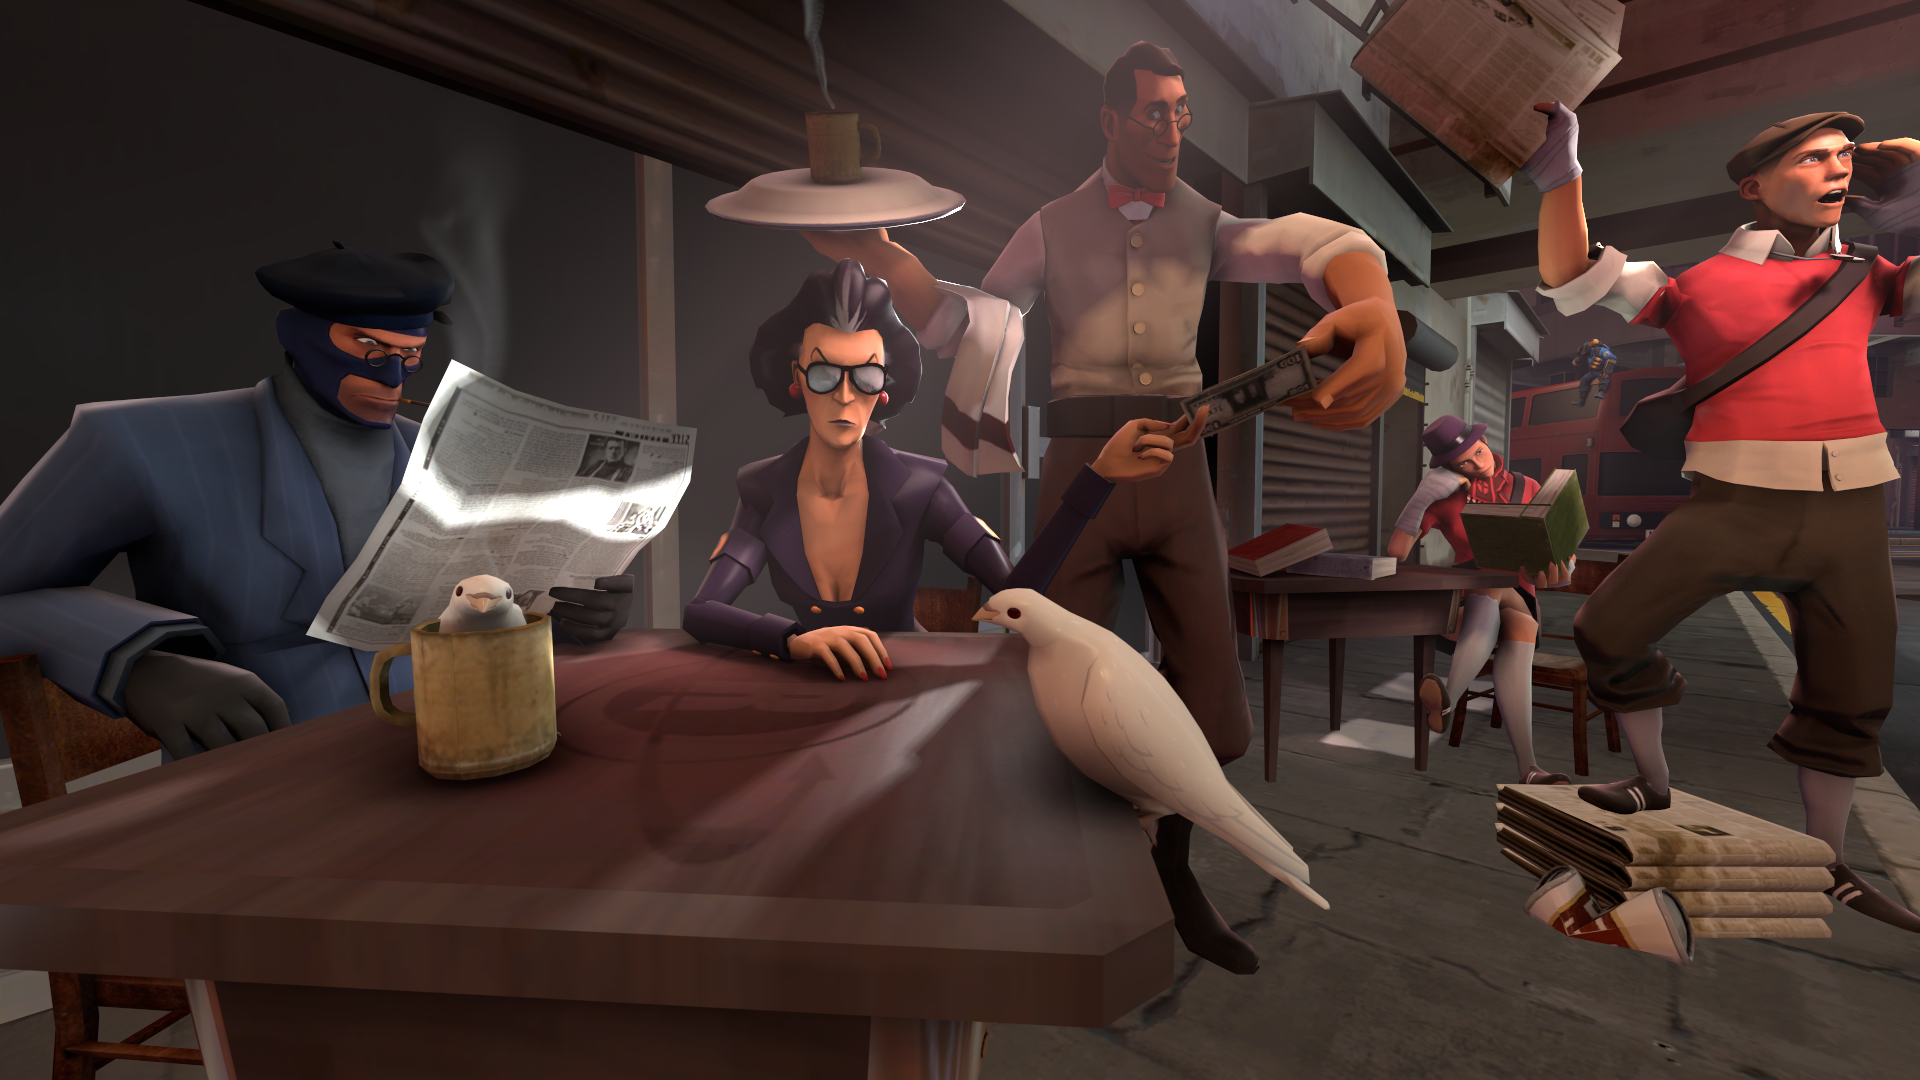 SFM Poster : Good Old Times by Olderika